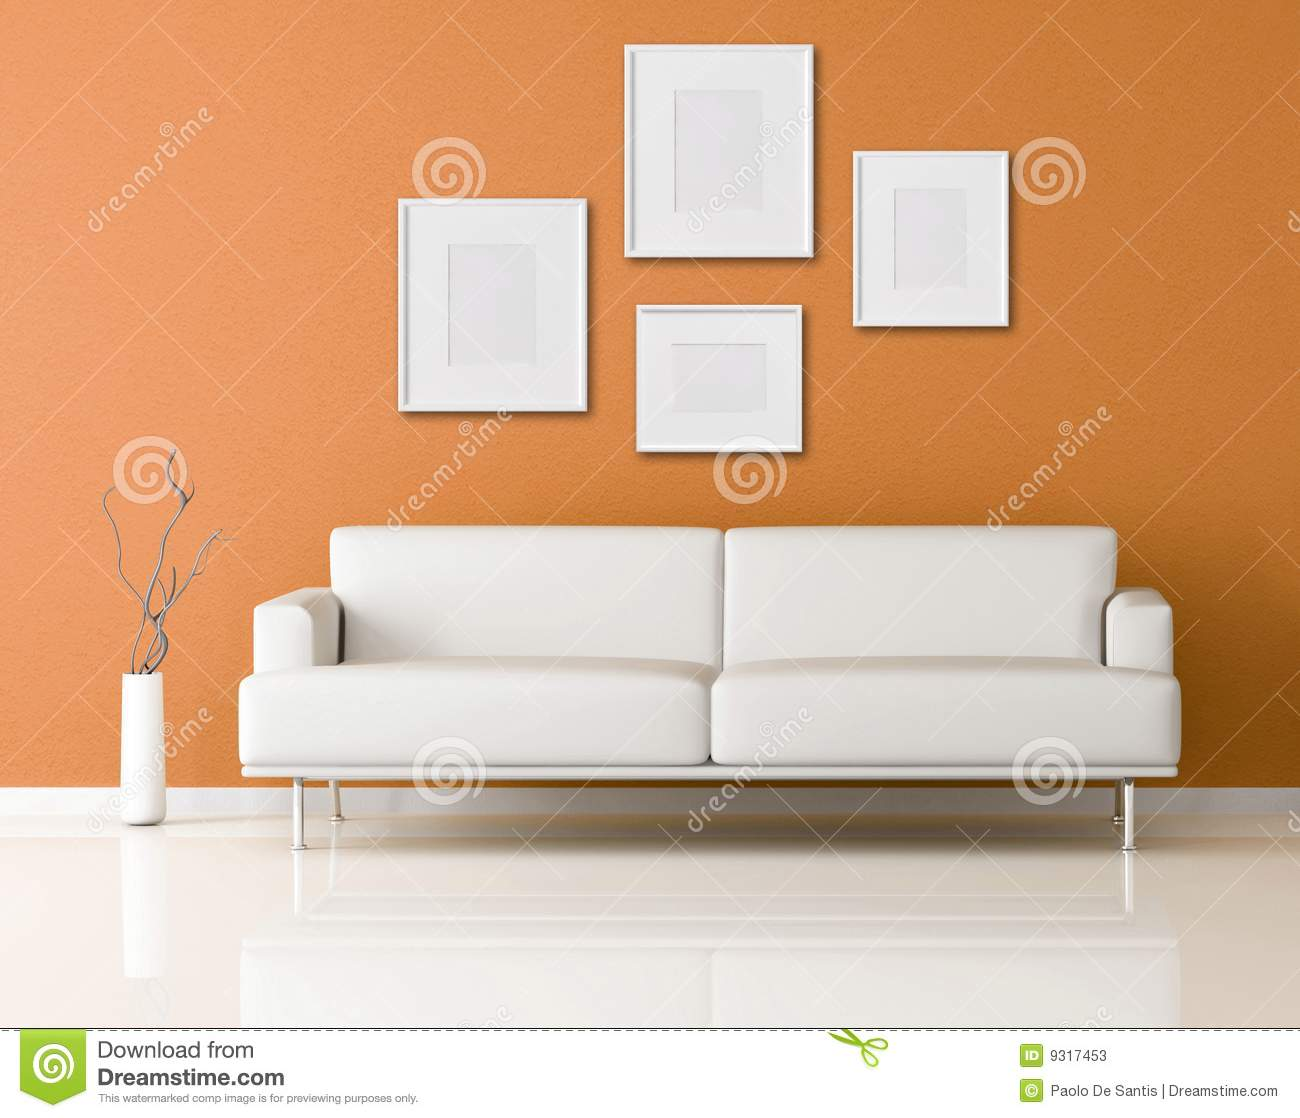 White Sofa In A Orange Living-room Stock Illustration - Illustration ...